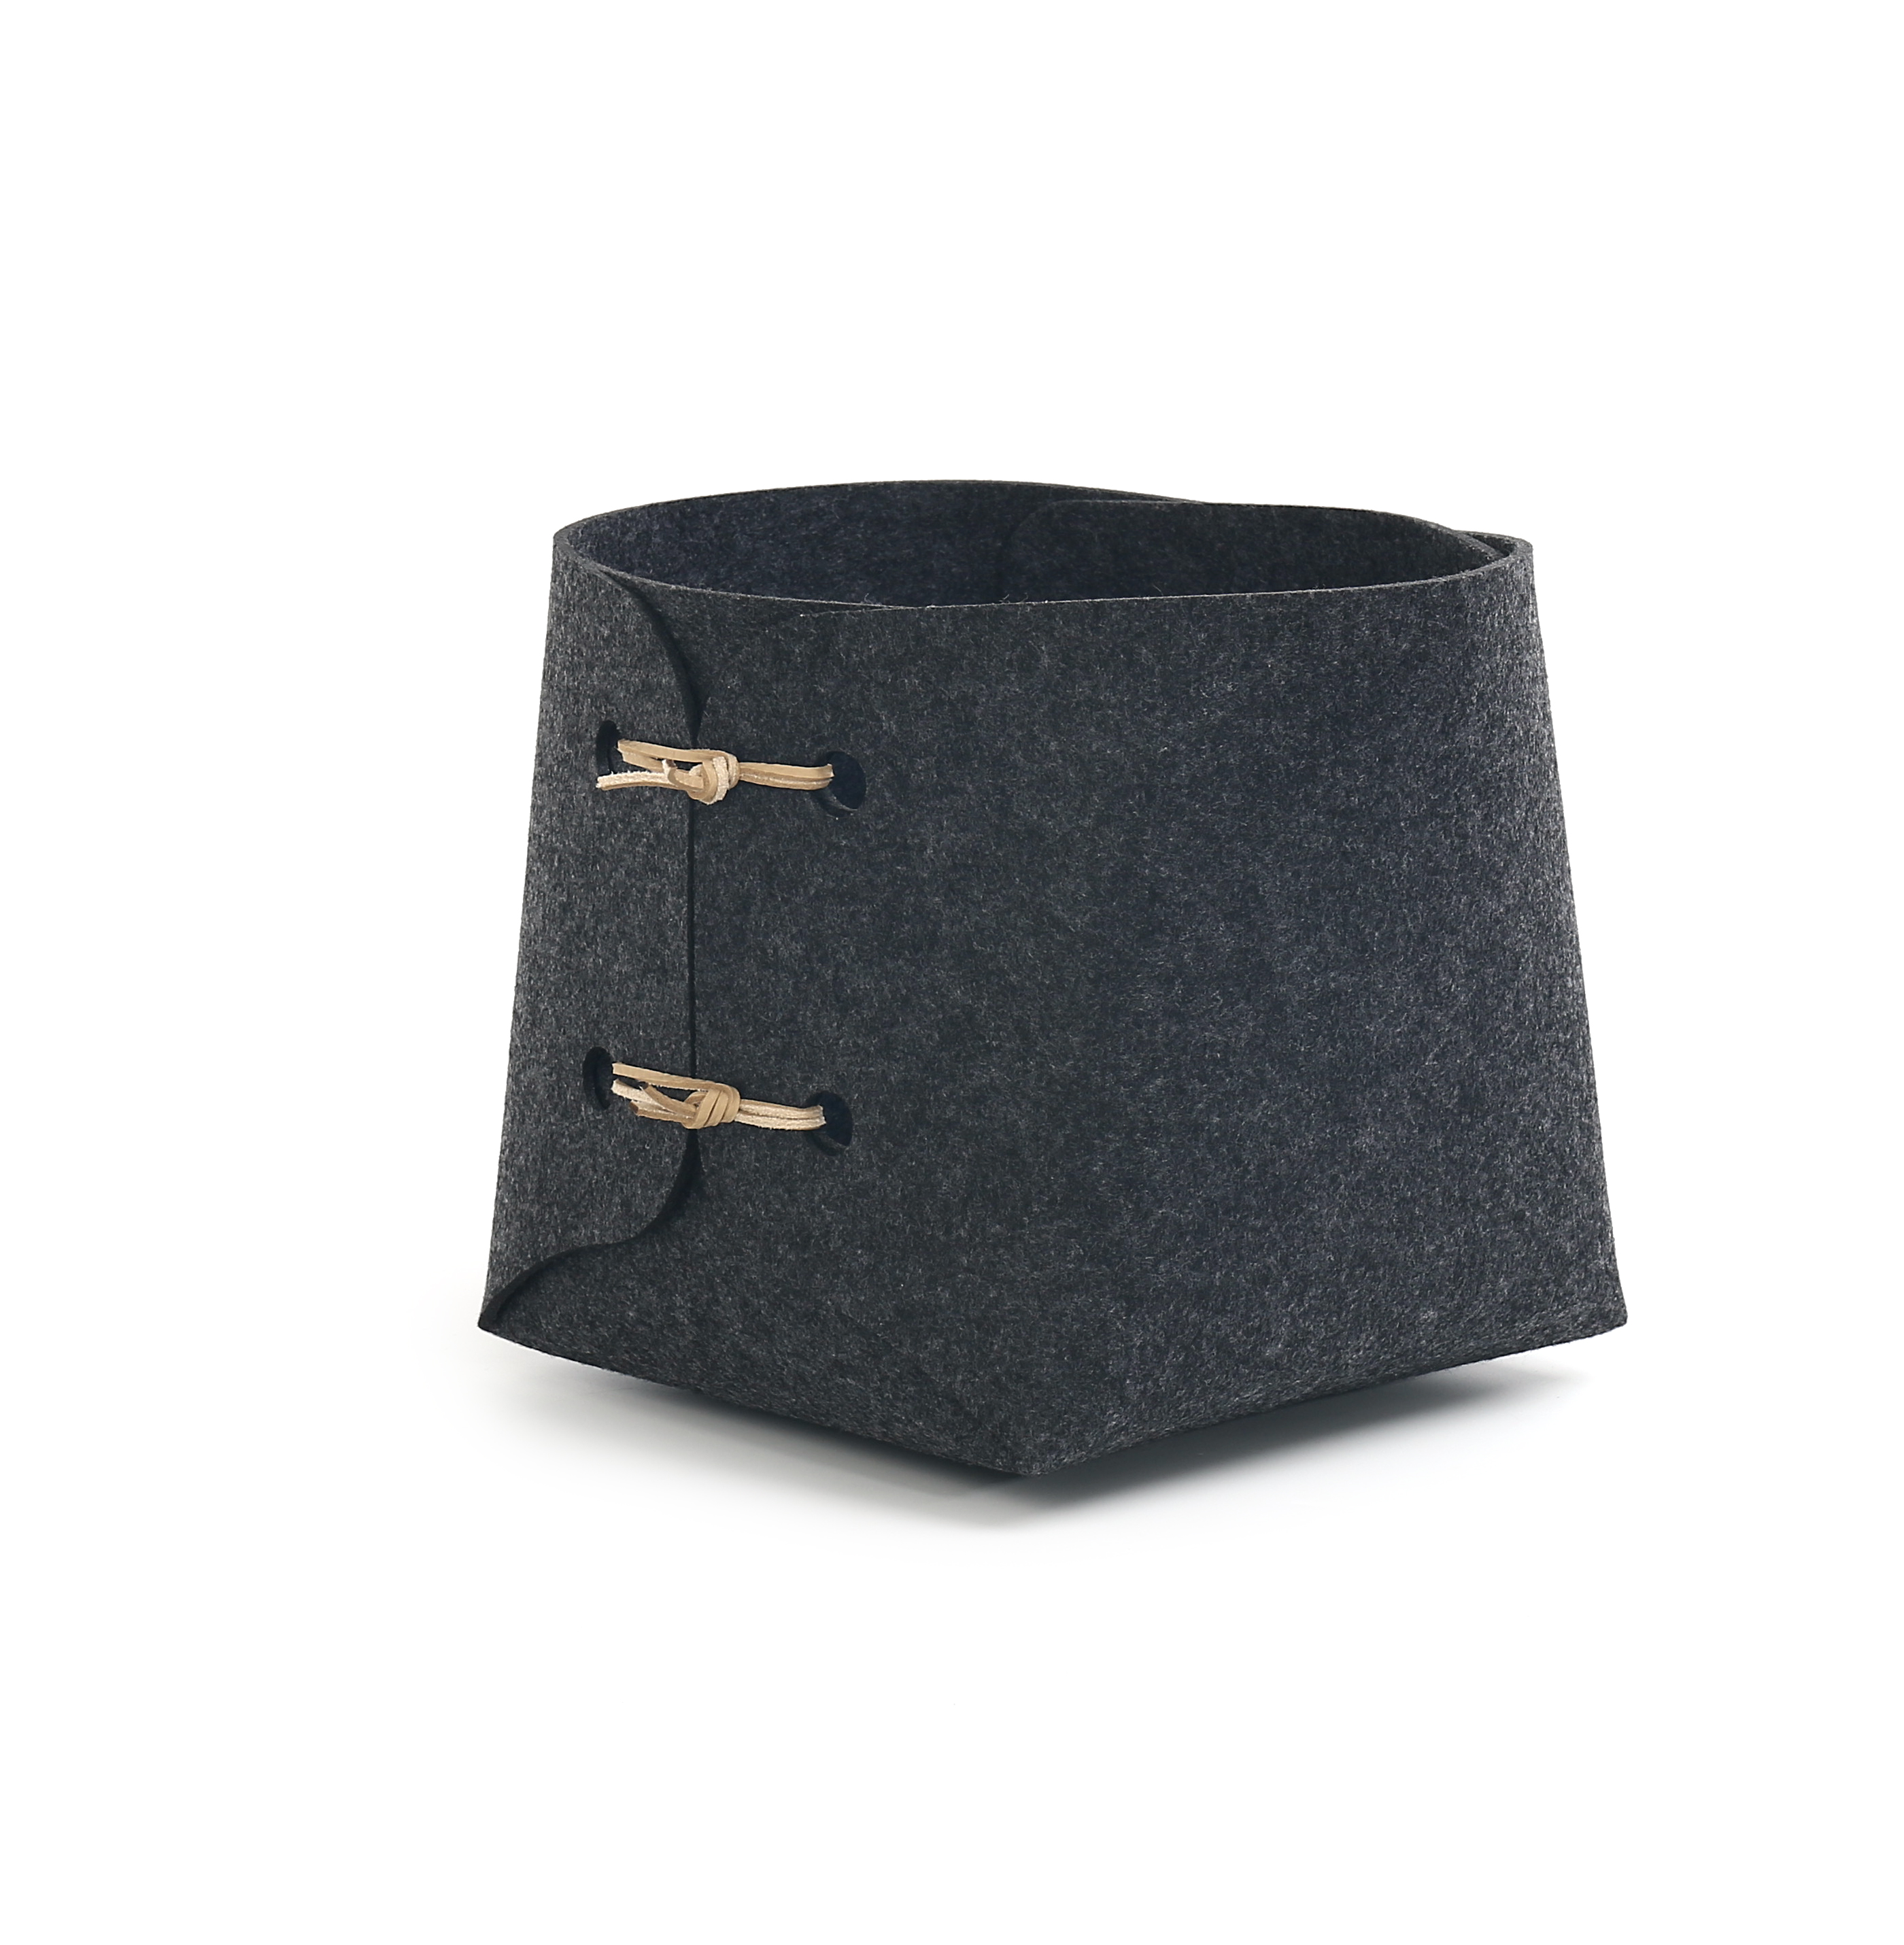 Felt Leather Cord Buckle Table Storage Case